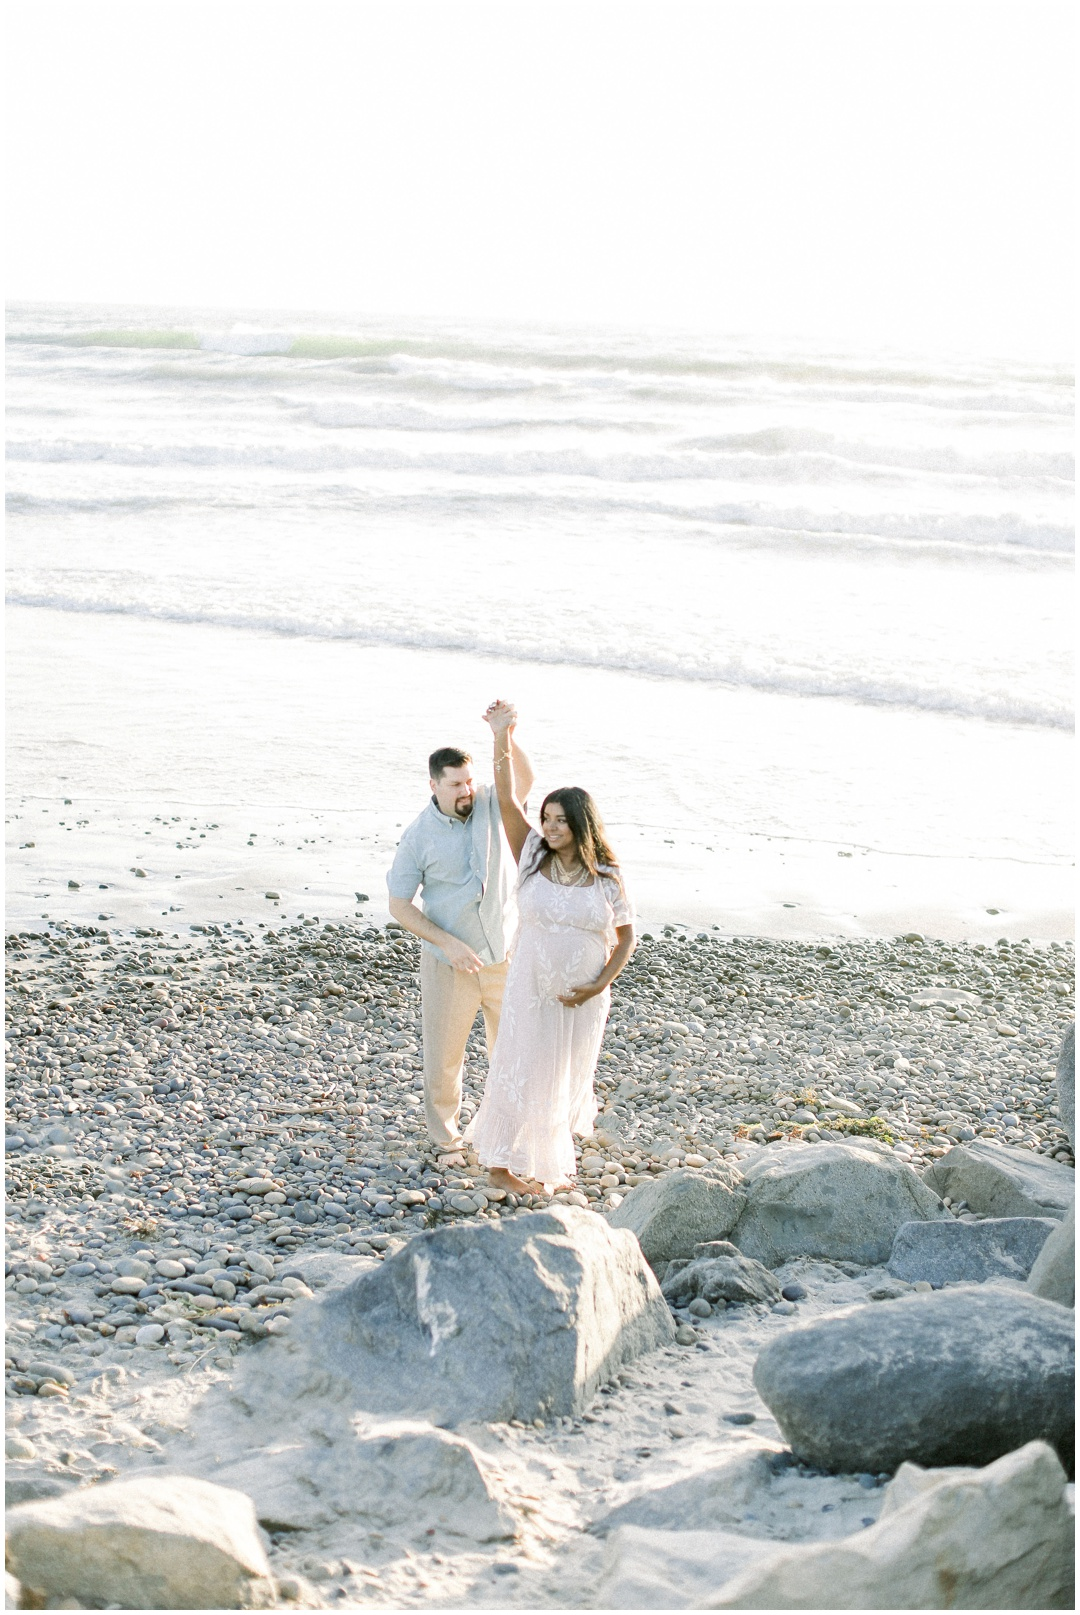 Newport_Beach_Newborn_Light_Airy_Natural_Photographer_Newport_Beach_Photographer_Orange_County_Family_Photographer_Cori_Kleckner_Photography_Huntington_Beach_Photographer_Family_OC_Newborn_Natasha_Flamenco_David_Flamenco_Maternity_Family_session__3403.jpg